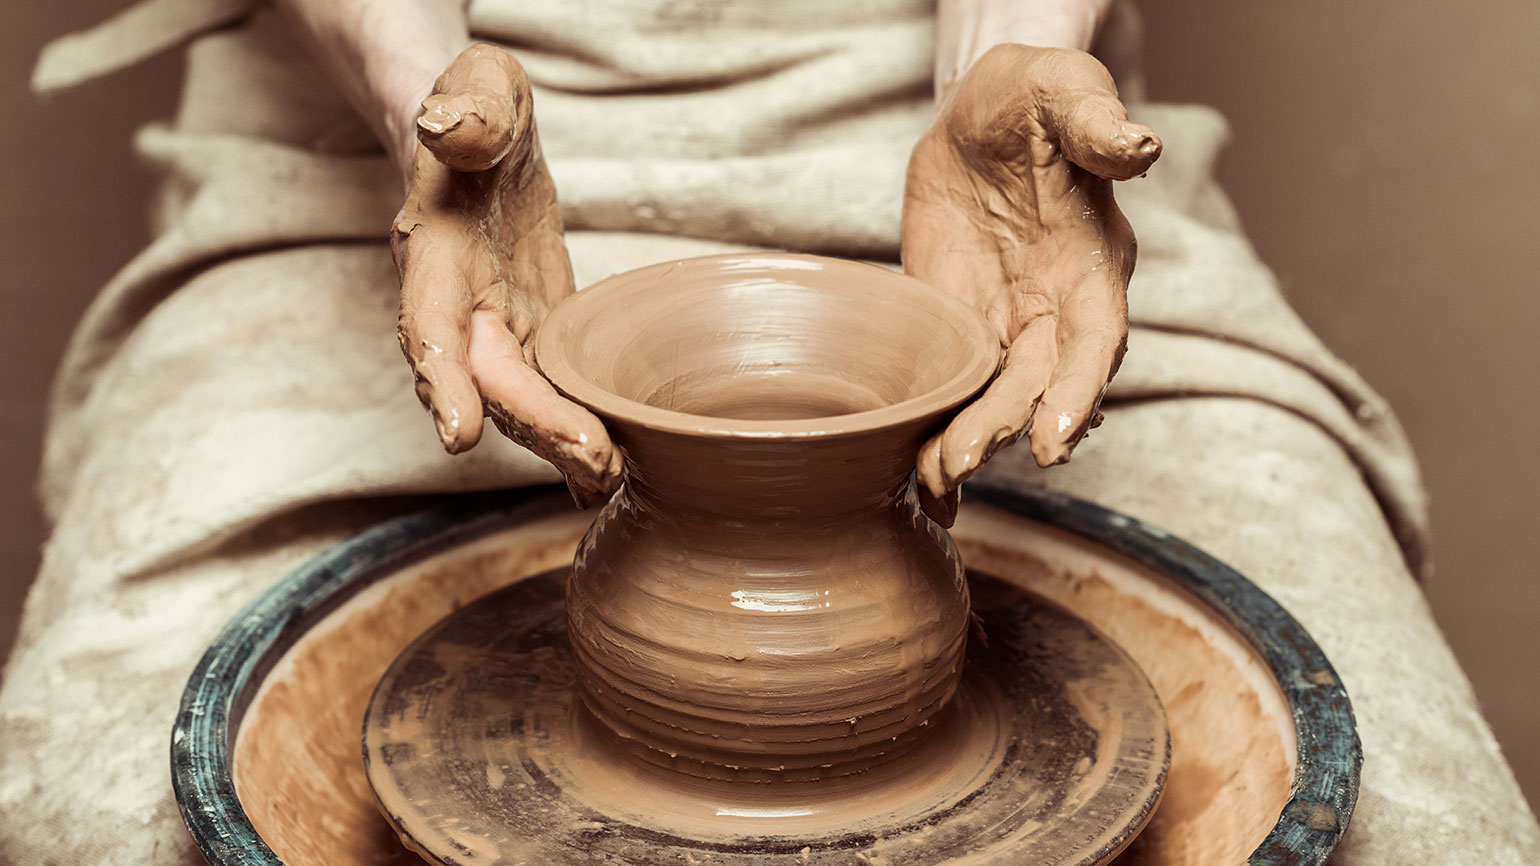 A woman's hands throwing a vase on a pottery wheel